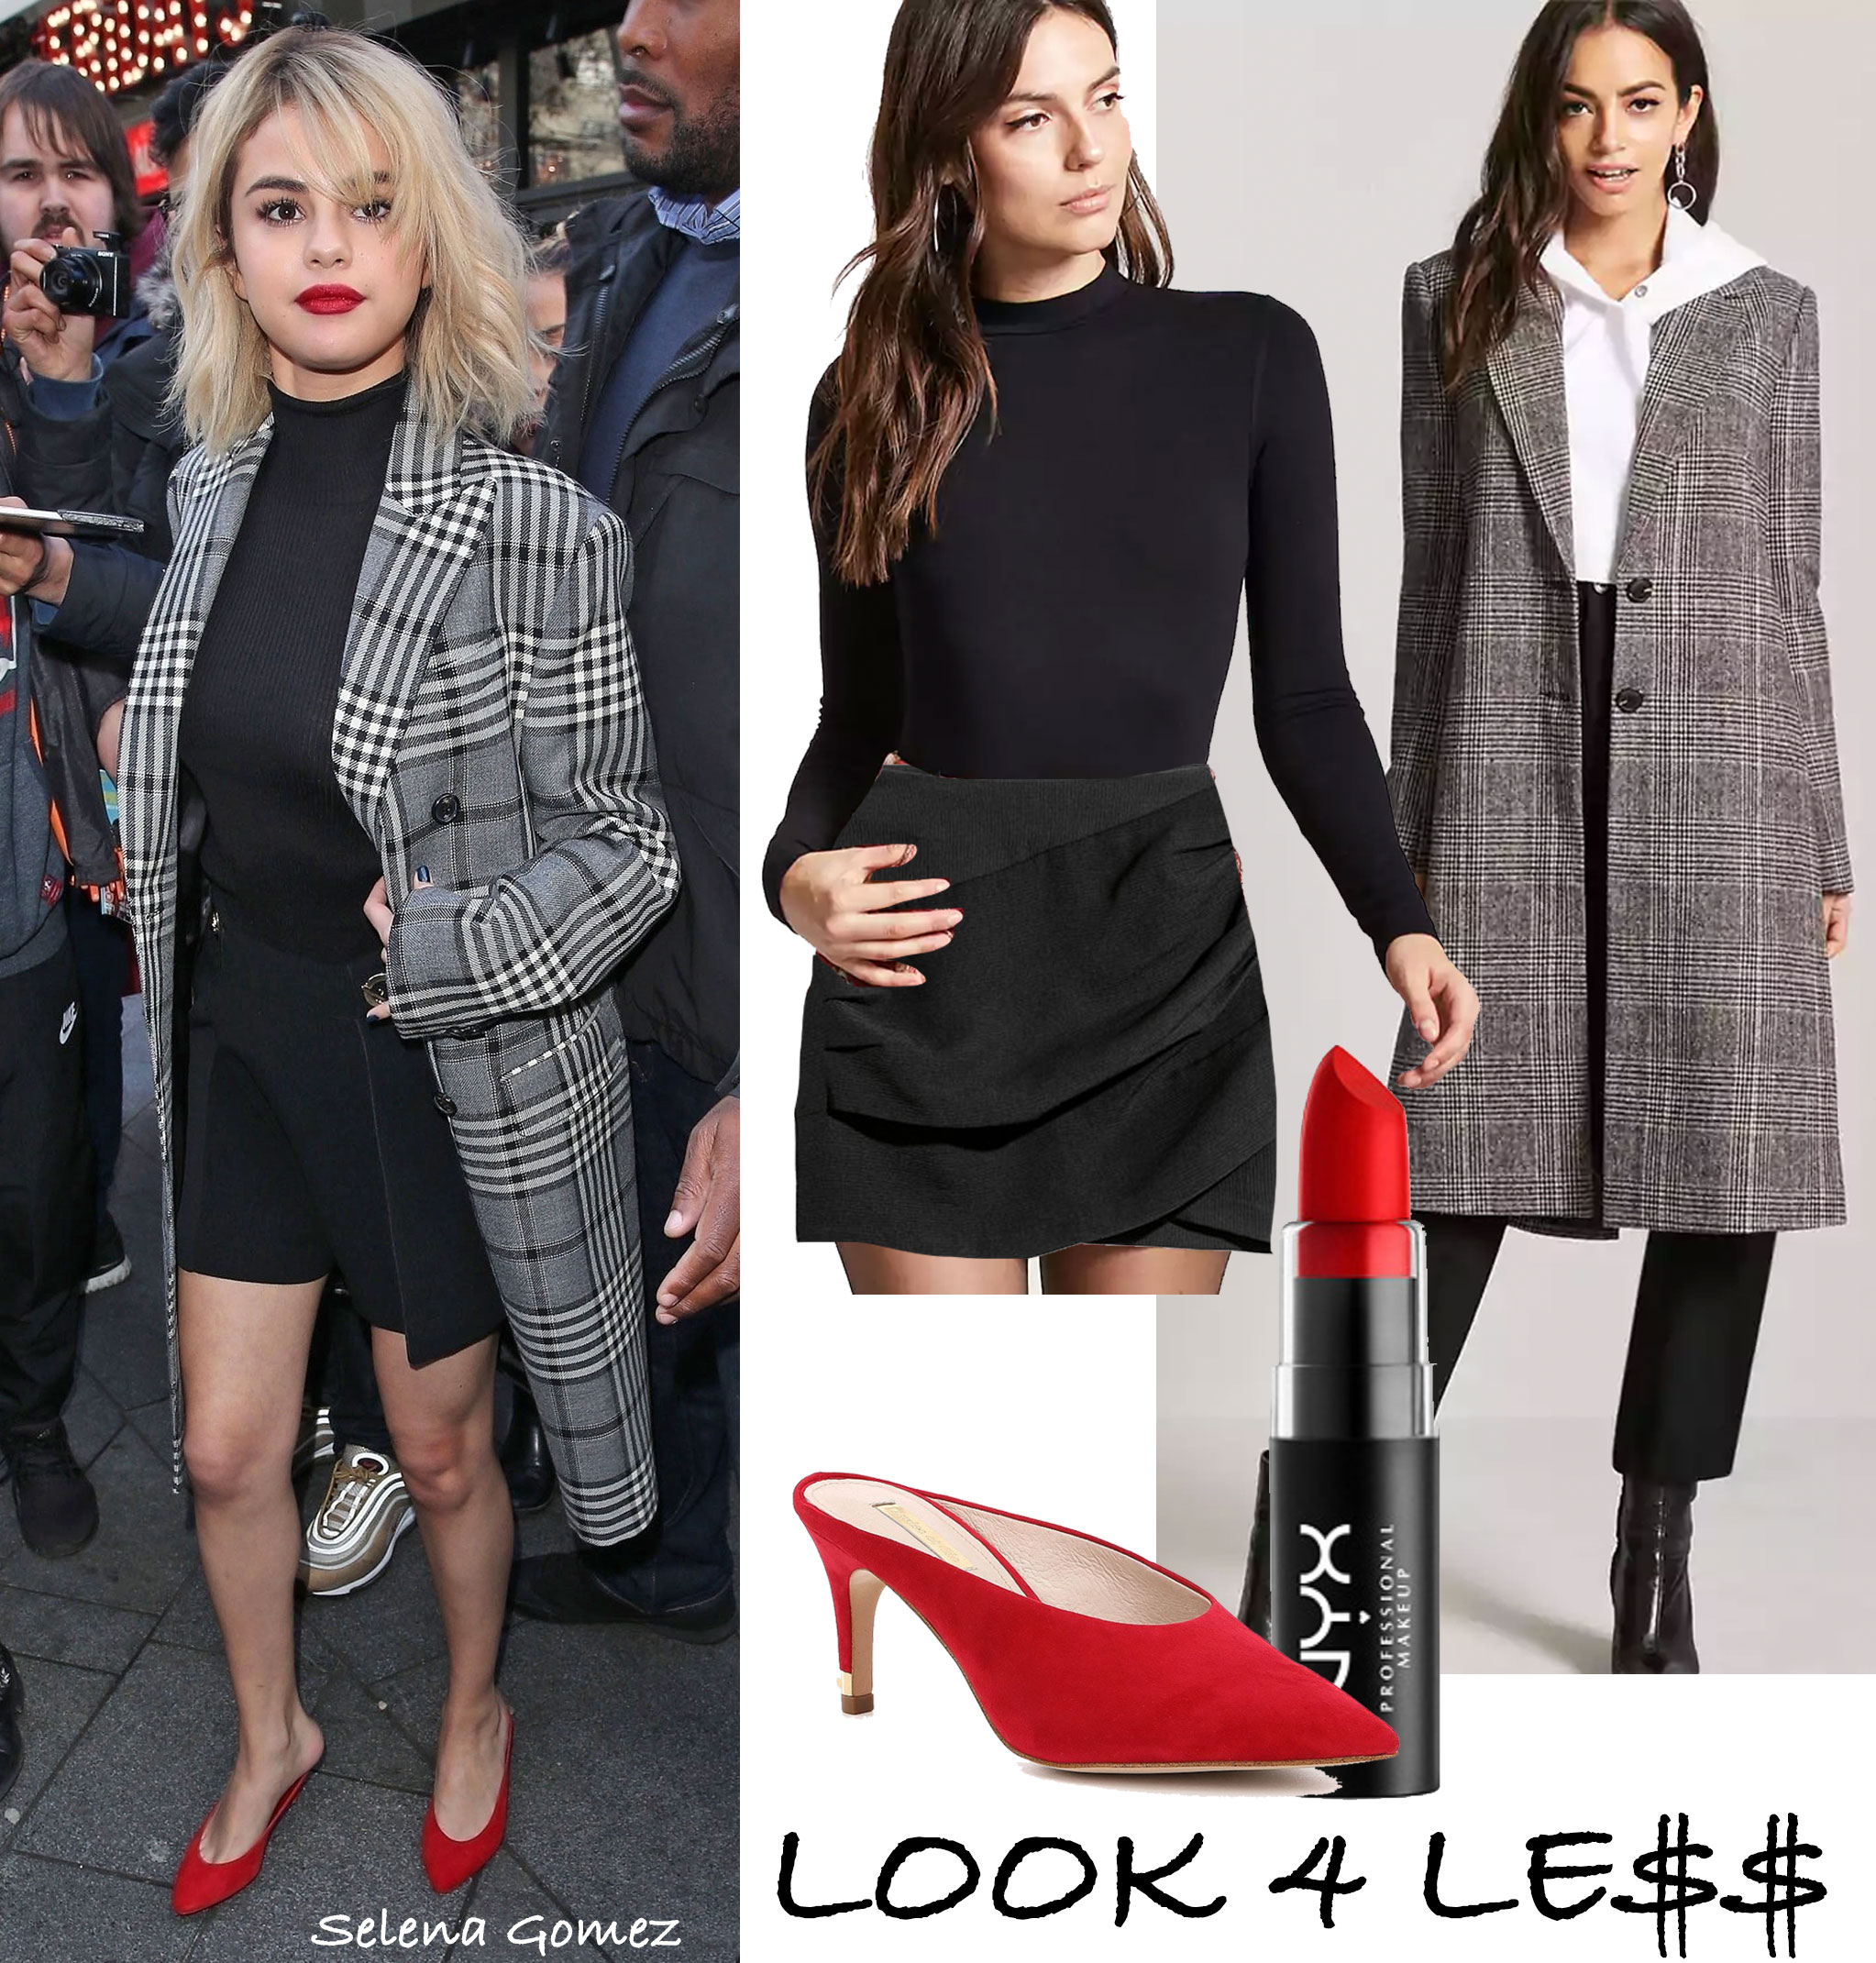 Selena Gomez wears a plaid coat, black mock neck top, black skirt and red mules.